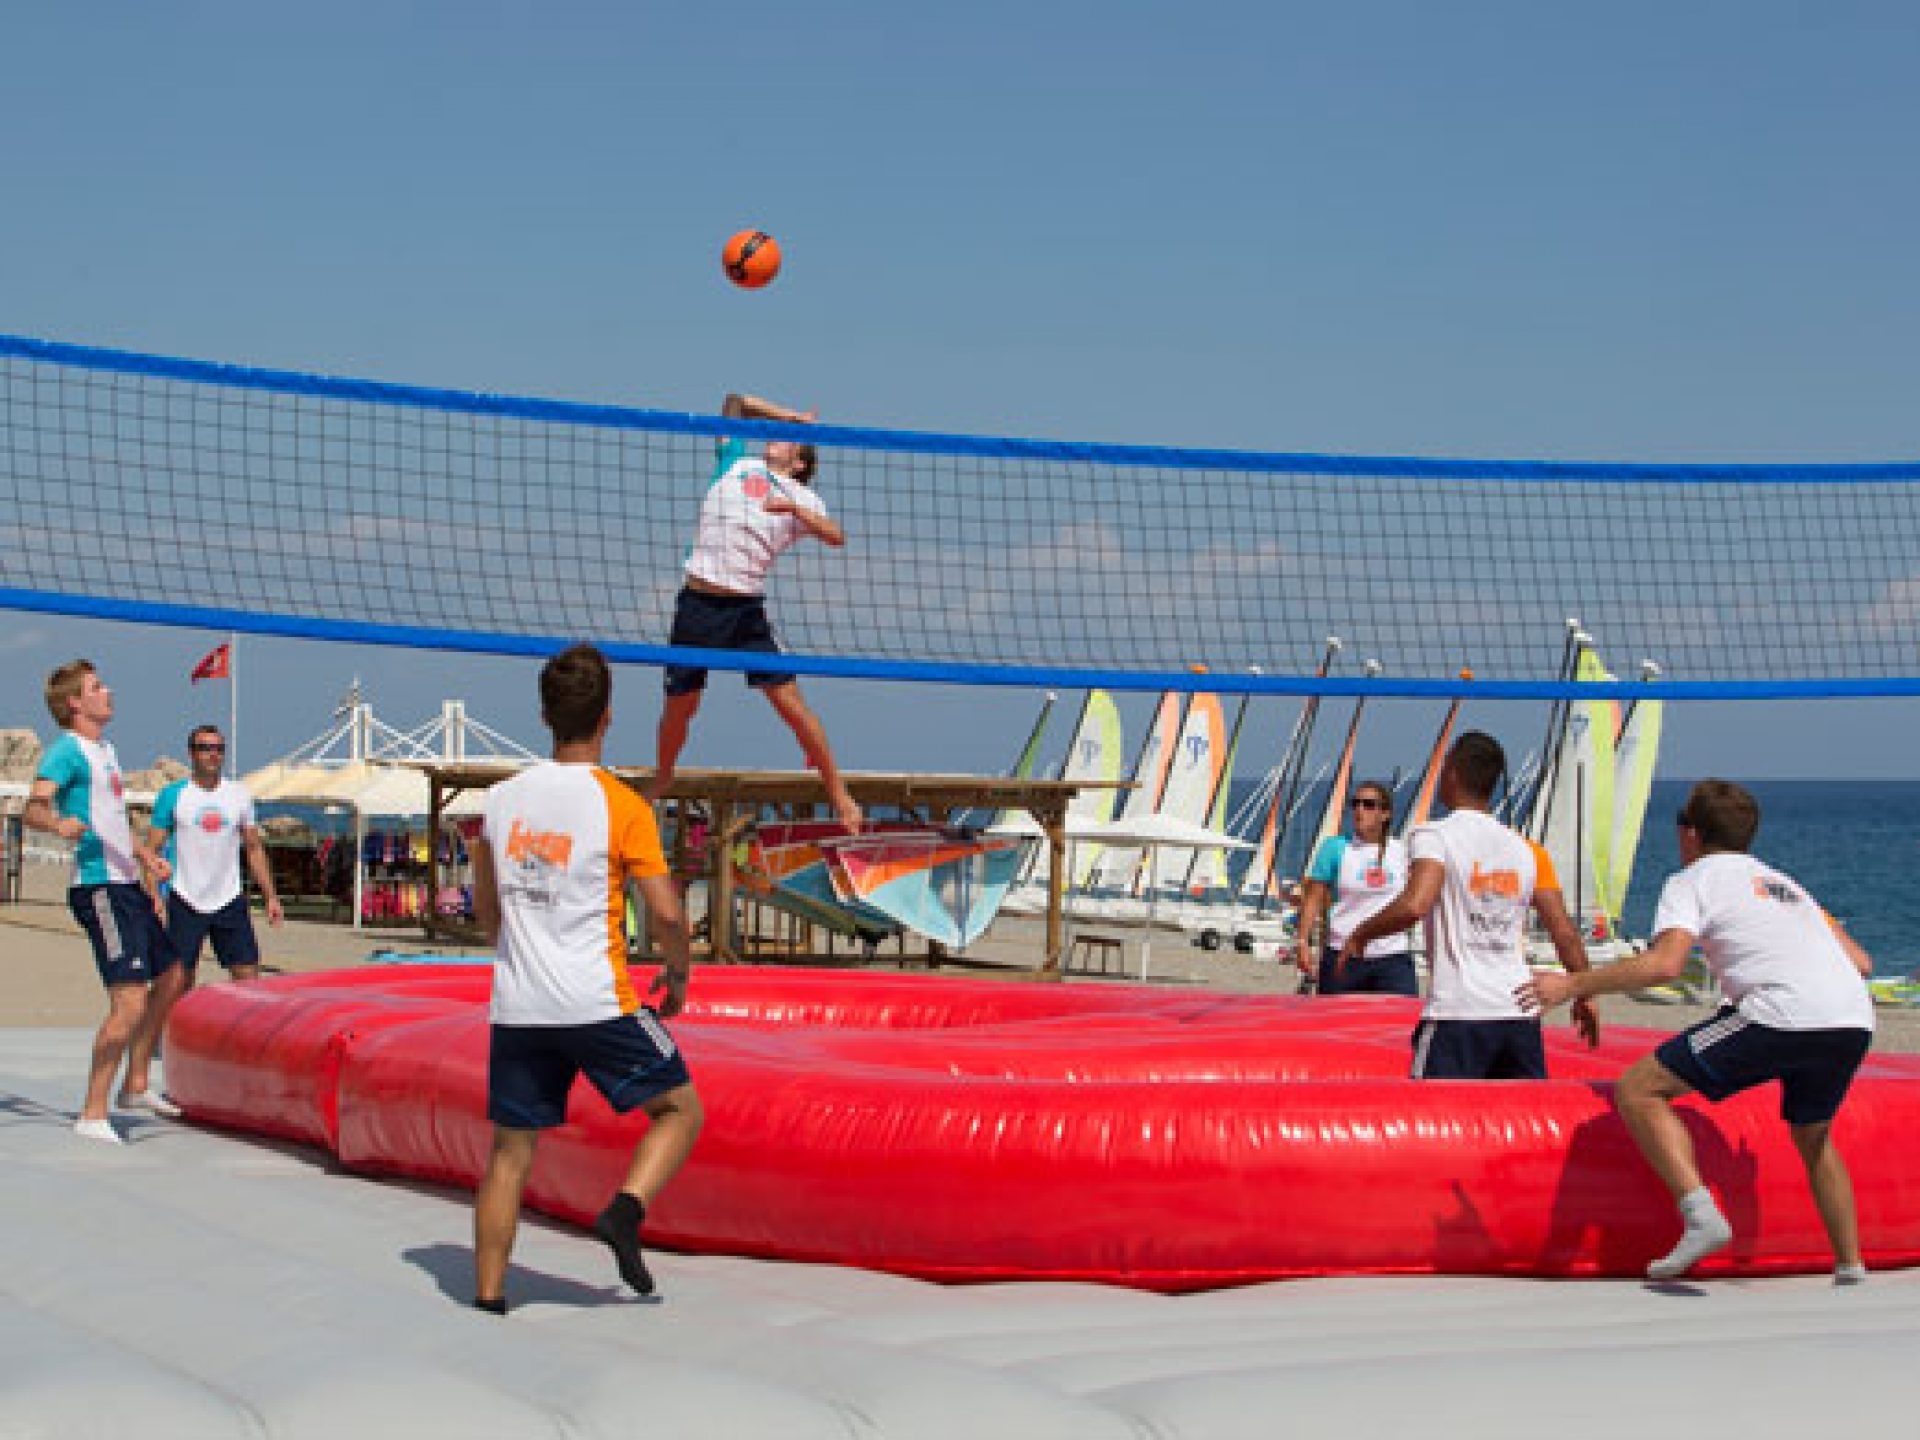 Bossaball teams up with ClubMed 1920x1440